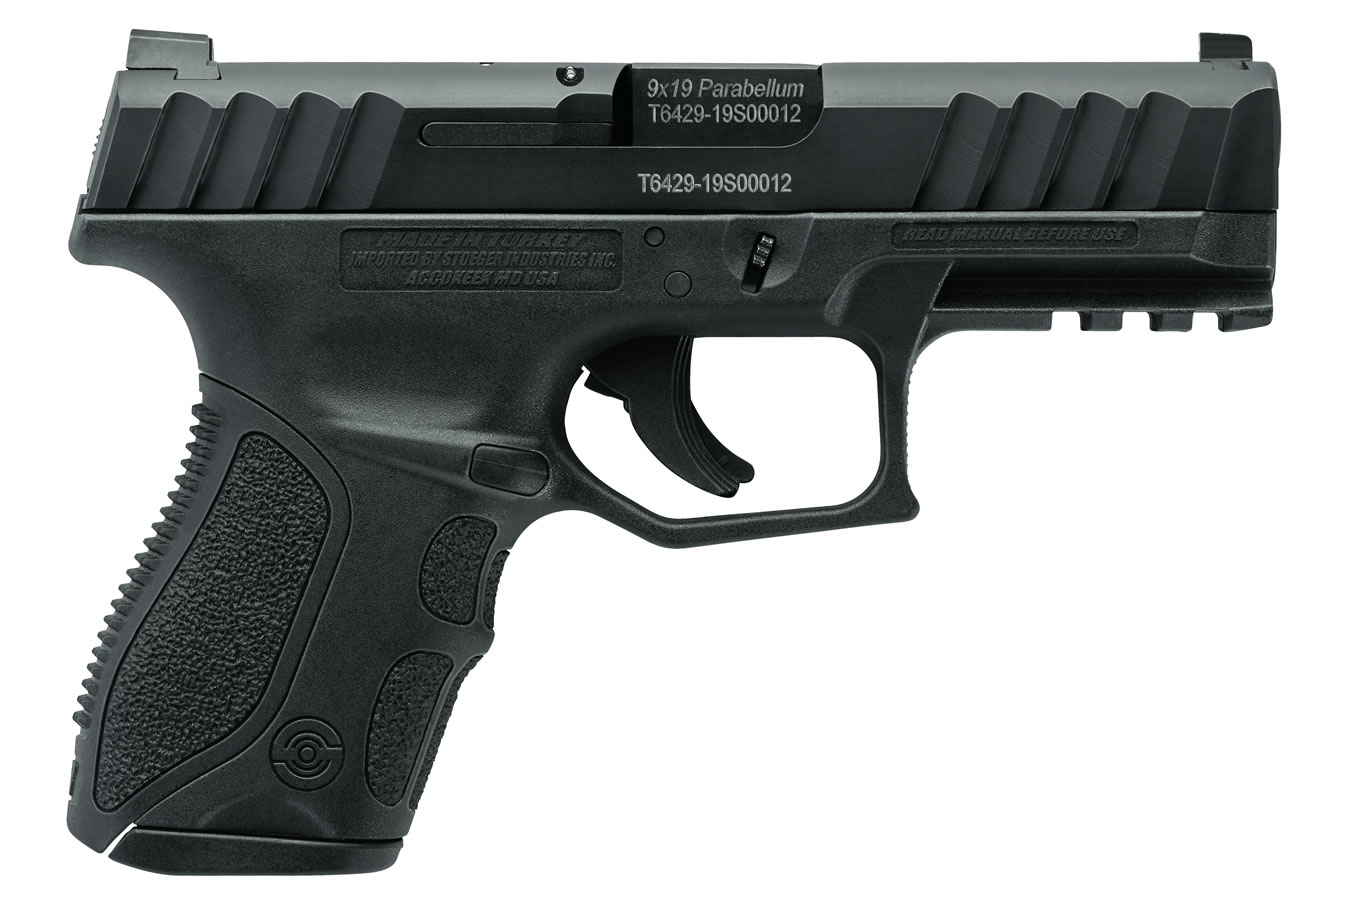 No. 12 Best Selling: STOEGER STR-9 COMPACT 9MM STRIKER-FIRED PISTOL